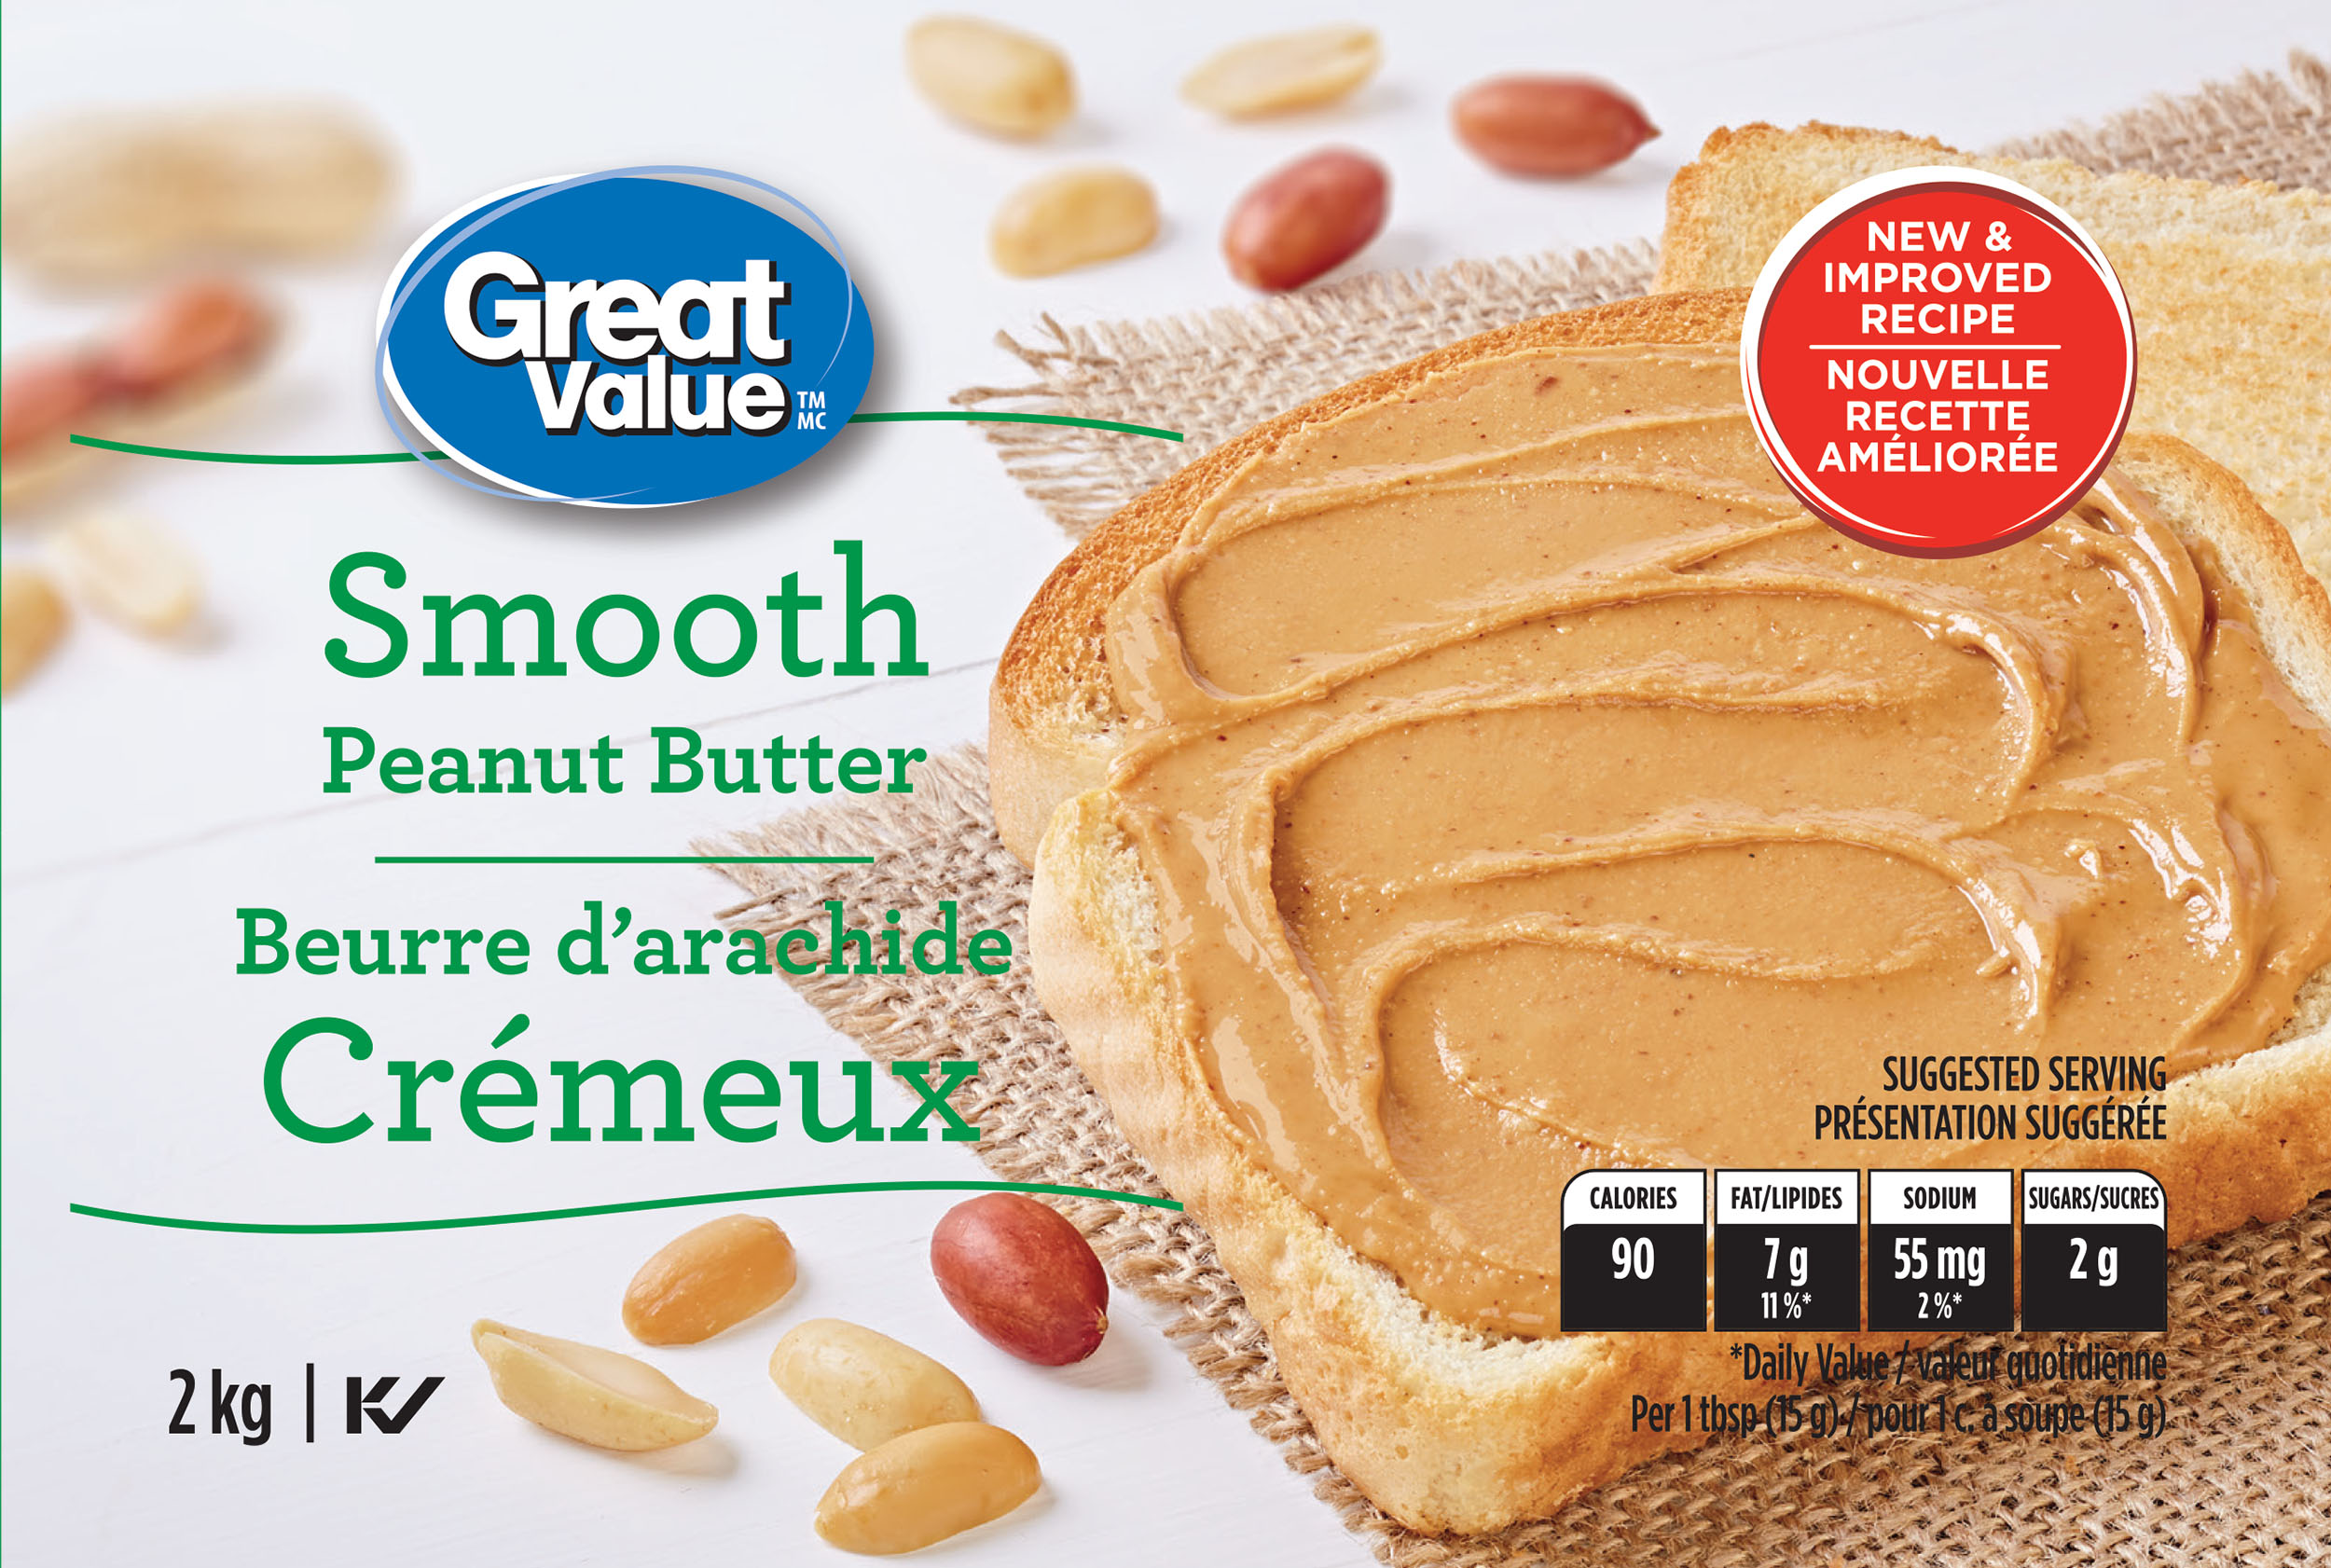 SmoothPeanutButter2kg_caSCO_lbl_Final_LR